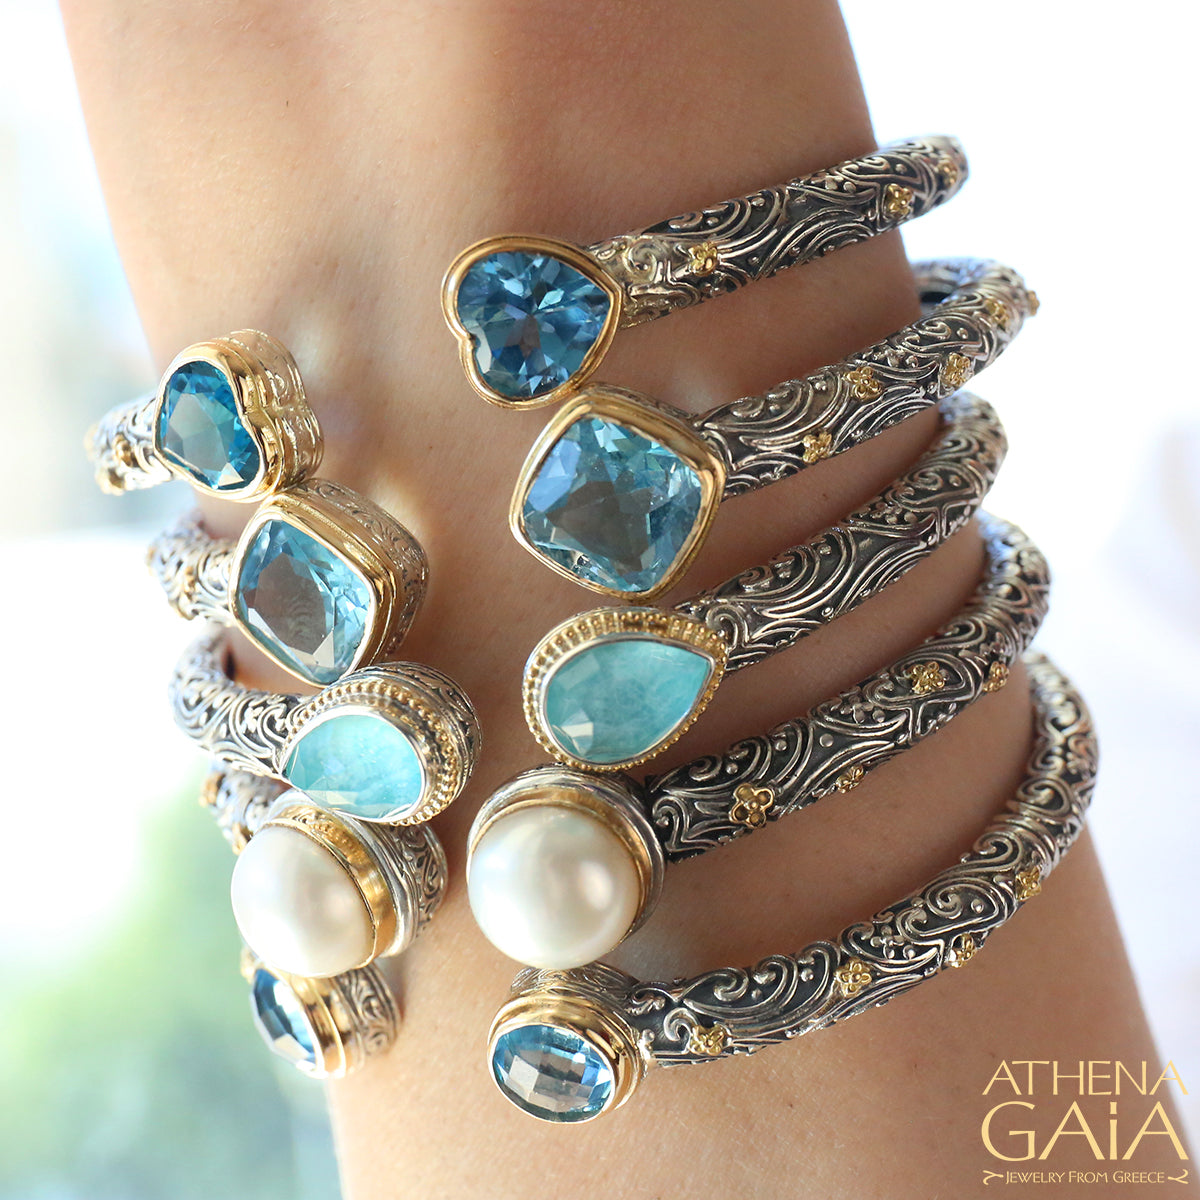 Meadow Breeze Pop Rocks Rain Drop Hinge Open Bracelet